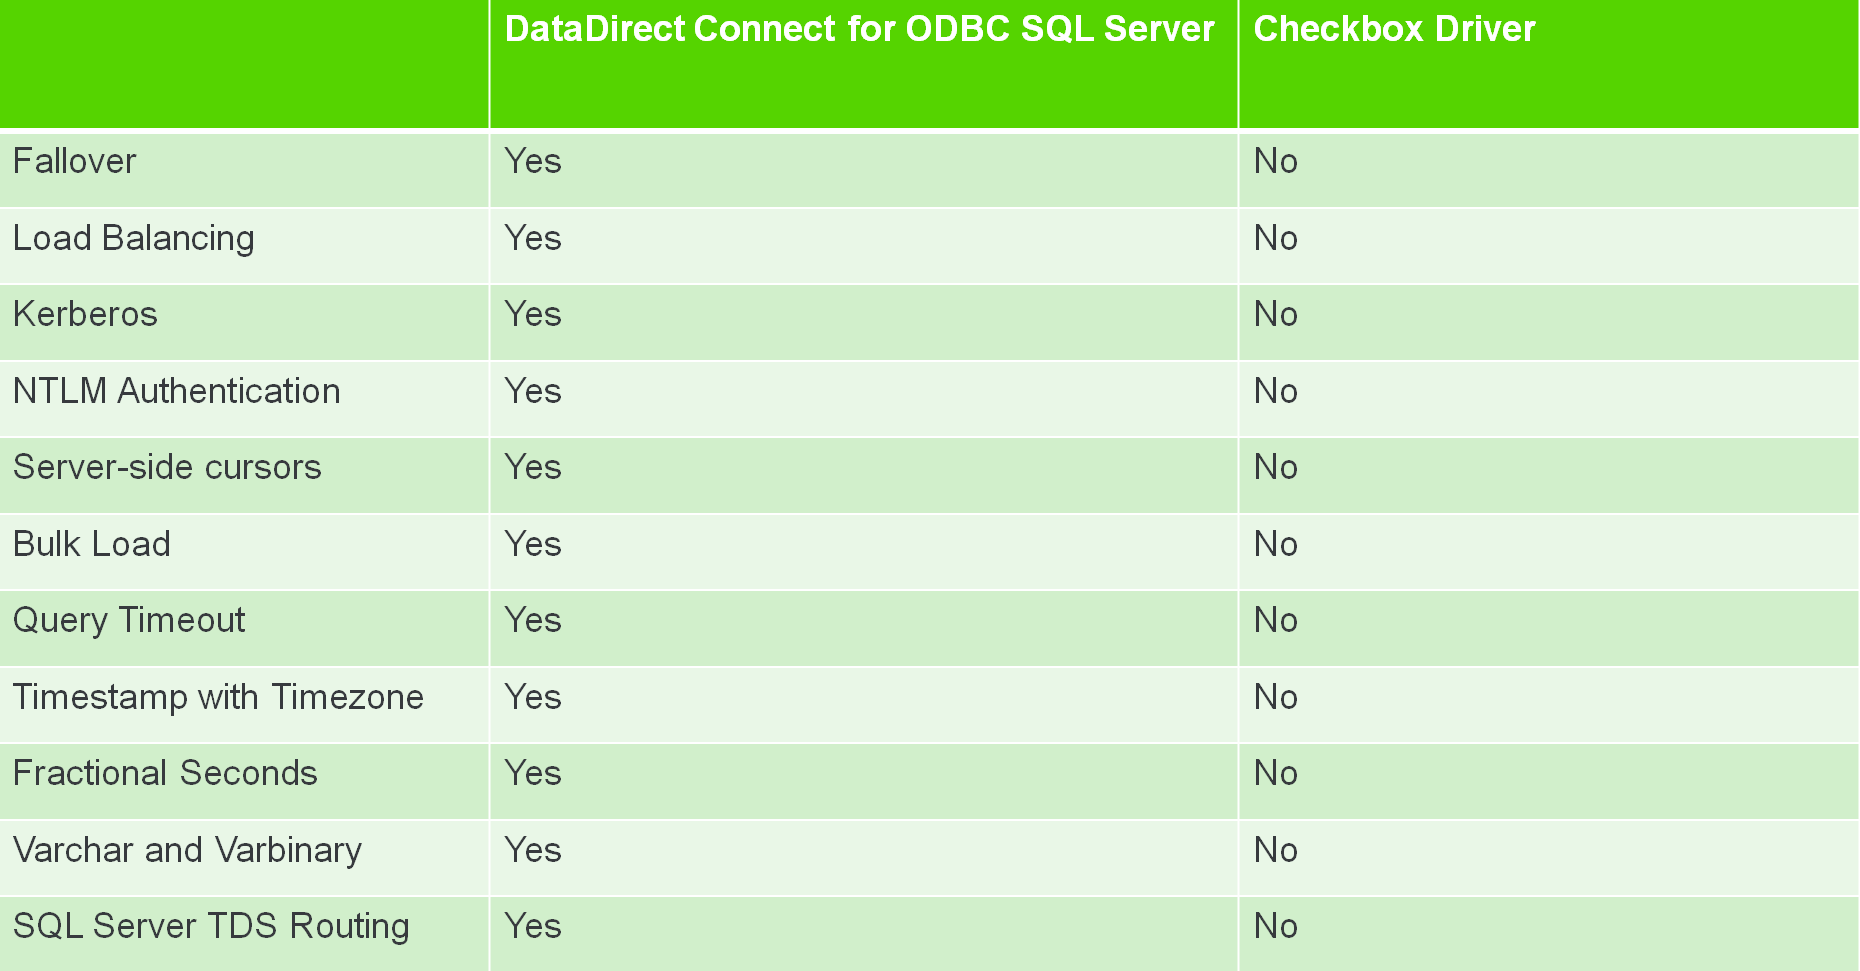 DataDirect Connect for ODBC SQL Server Versus Checkbox Driver